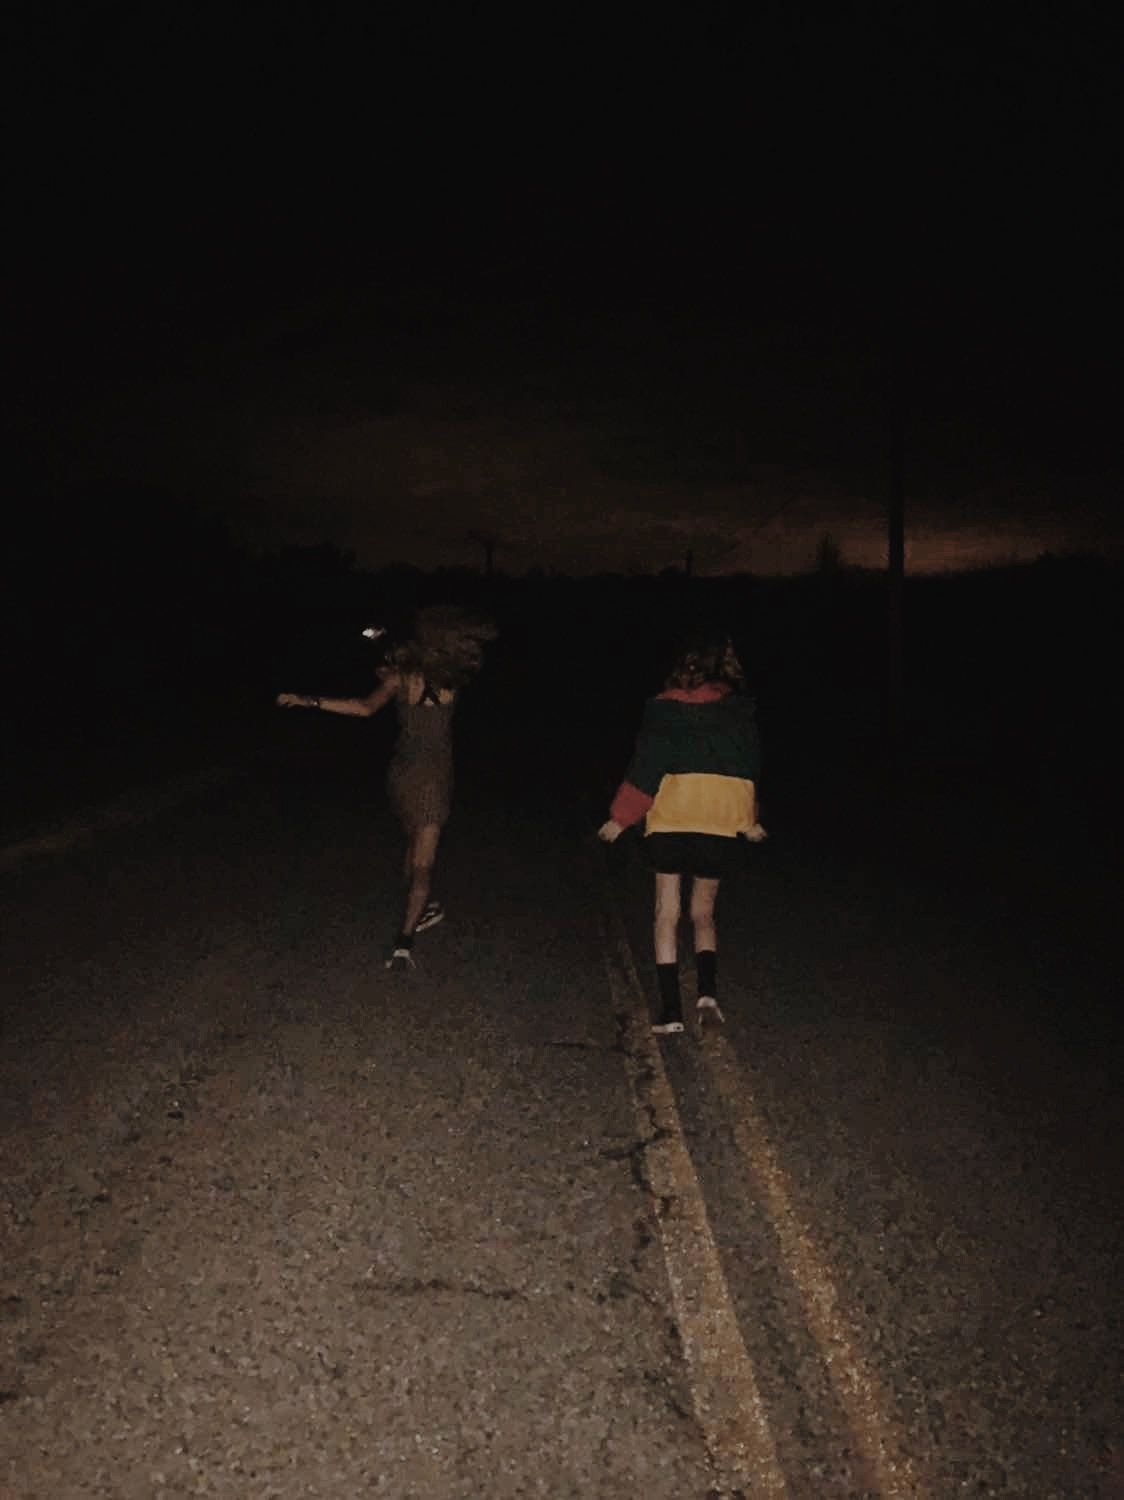 Emo Grunge Aesthetic Google Search Grungeaesthetic Emo Grunge Aesthetic Goo Aesthetic Emo Goo Go In 2020 Grunge Photography Grunge Aesthetic Night Aesthetic